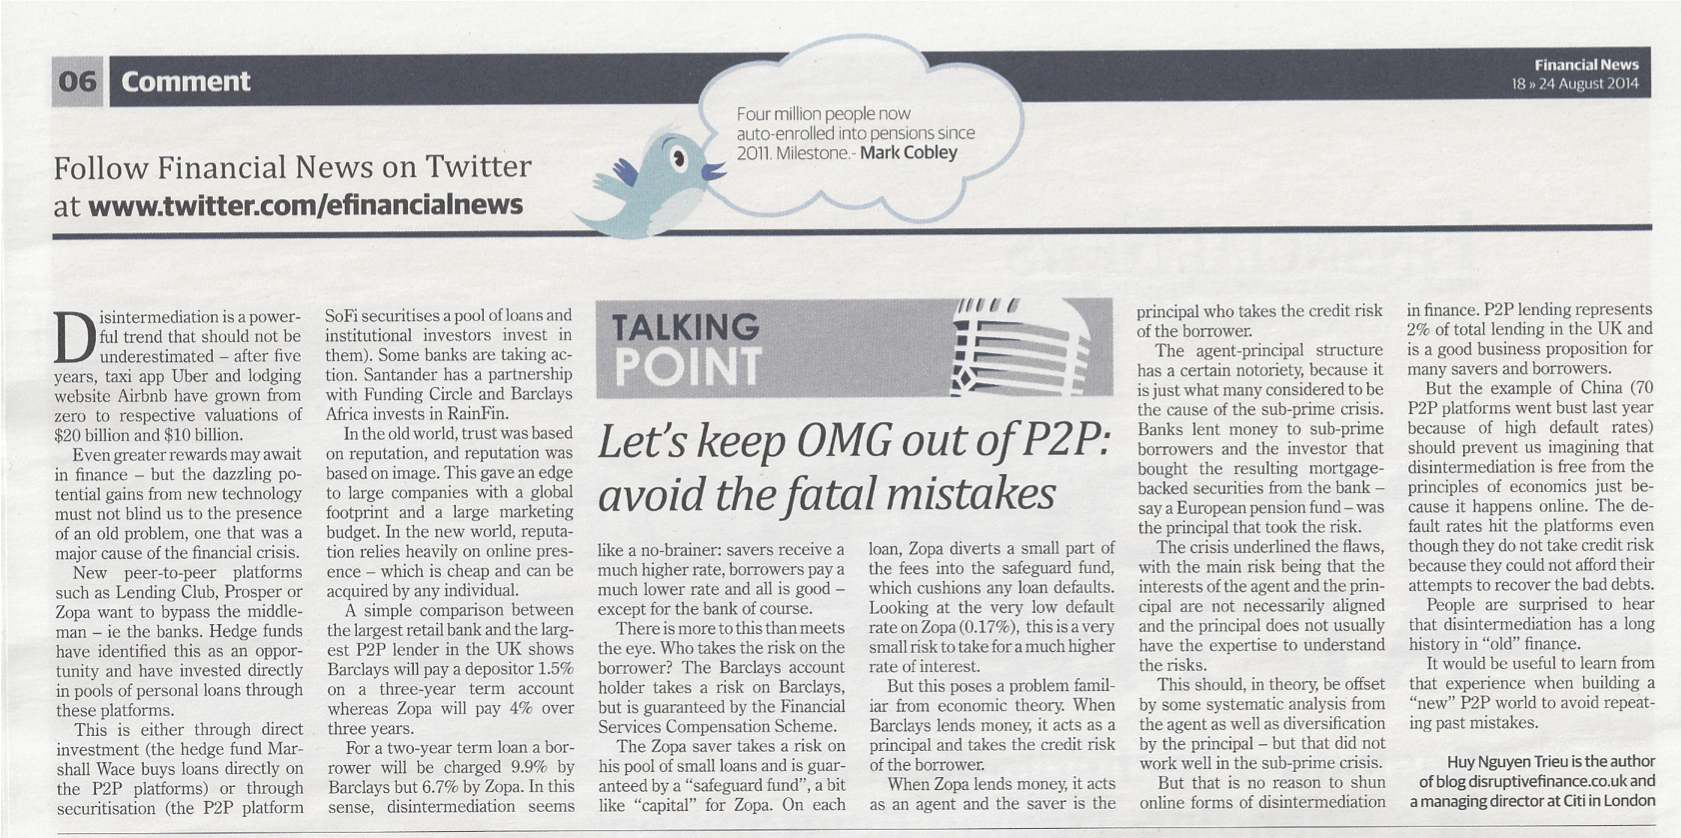 Financial News August 2014 - Let's keep OMG out of P2P